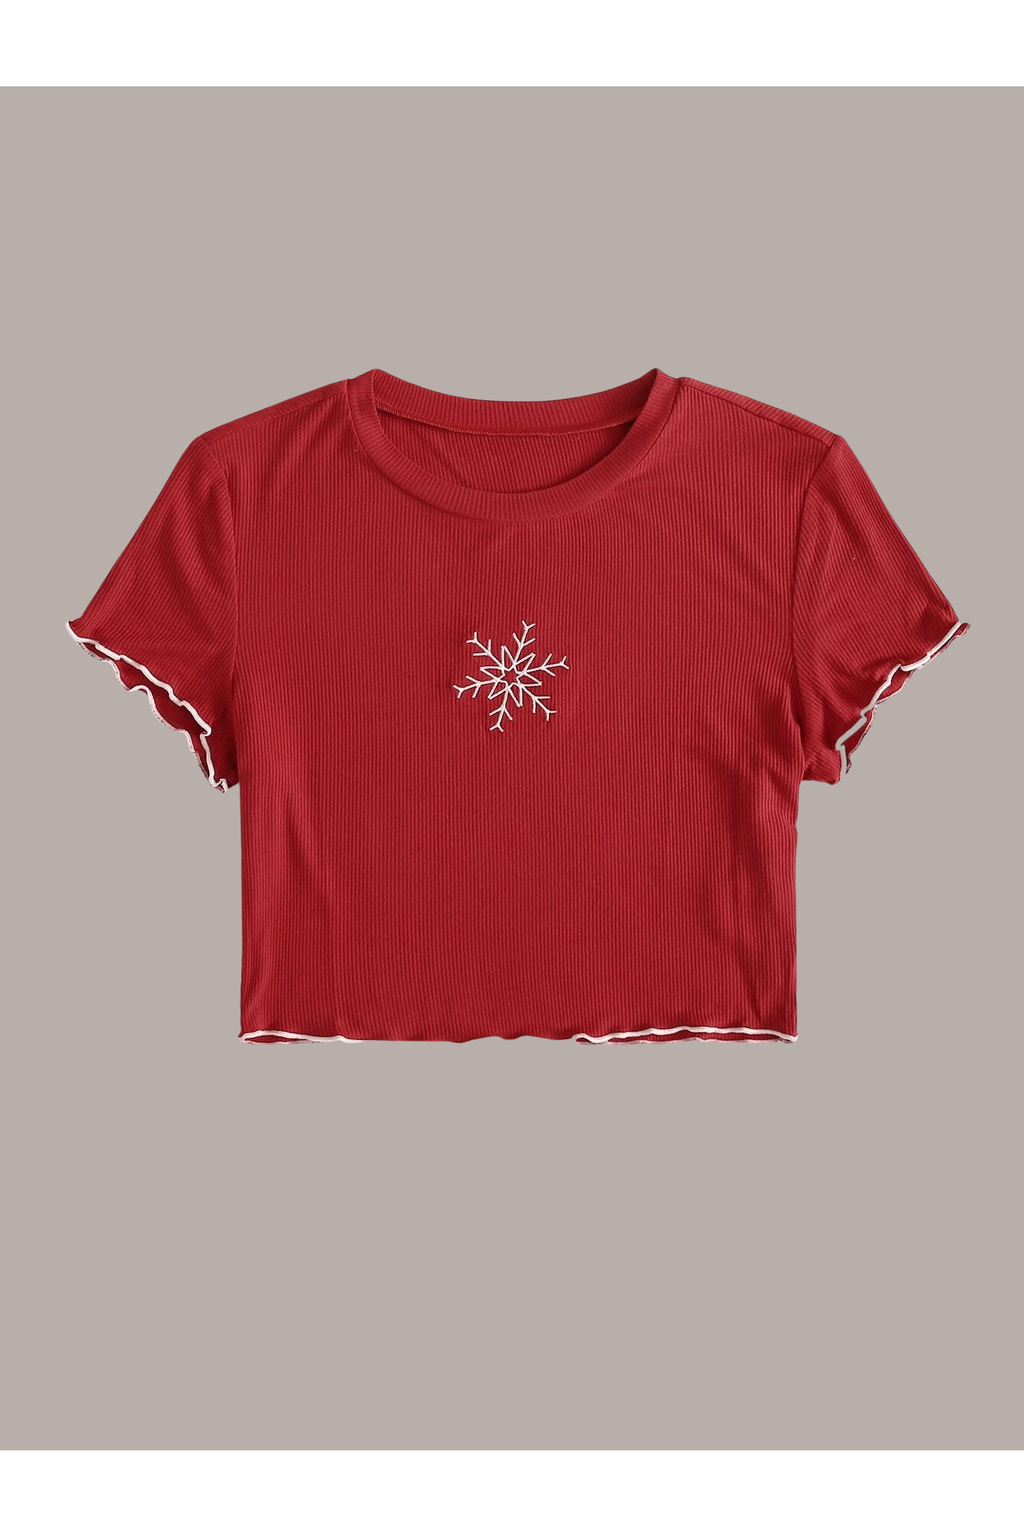 Snowflake Embroidered Red Top